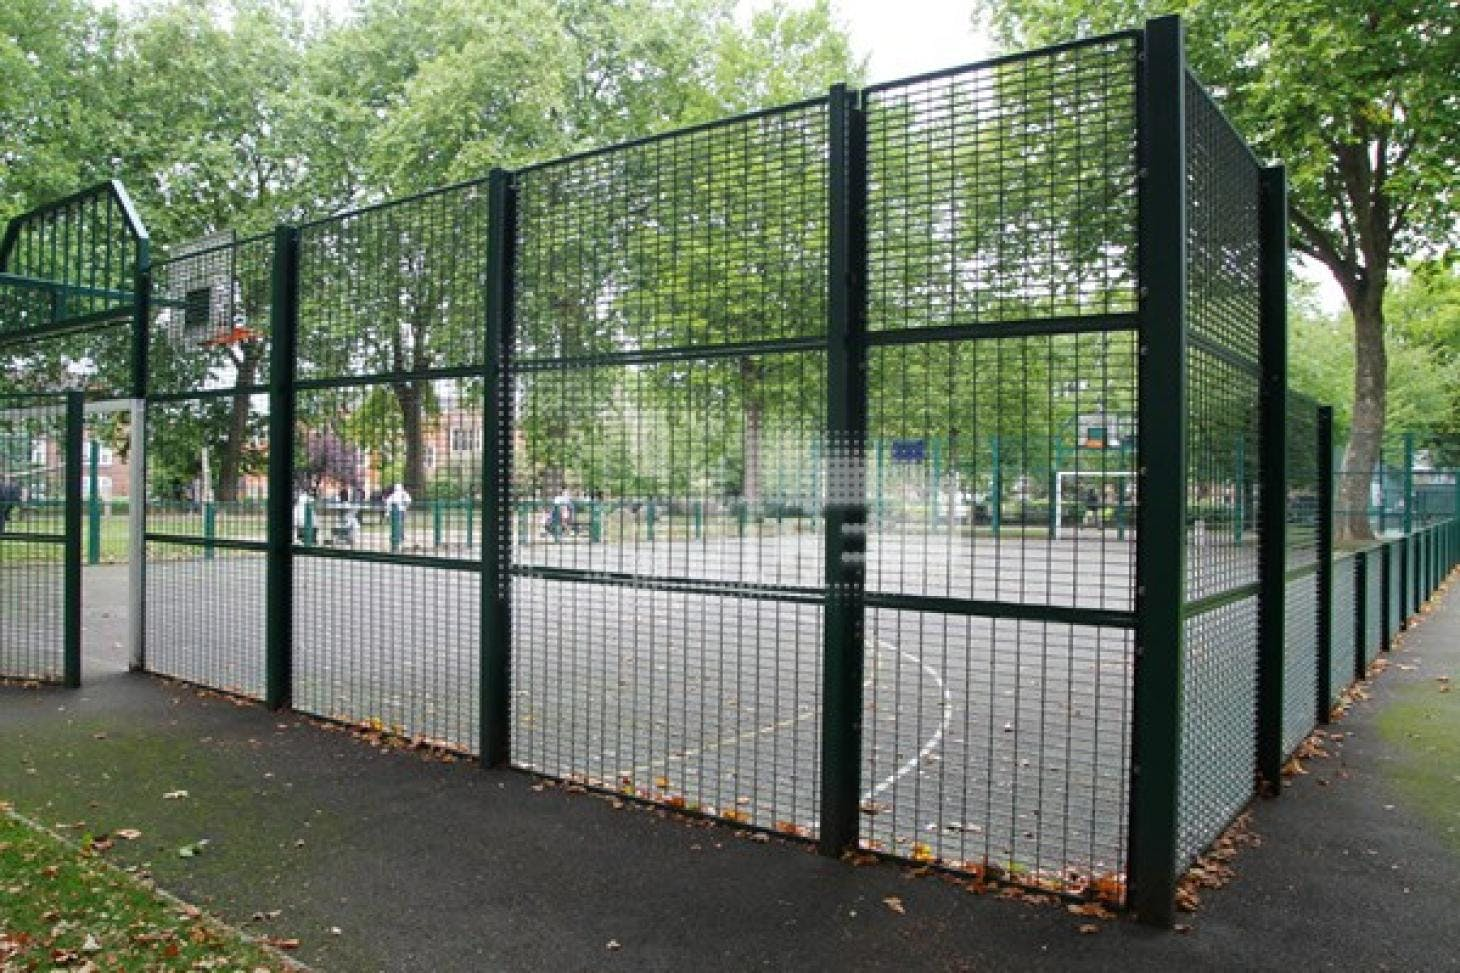 Poplar Recreation Ground 5 a side | Concrete football pitch